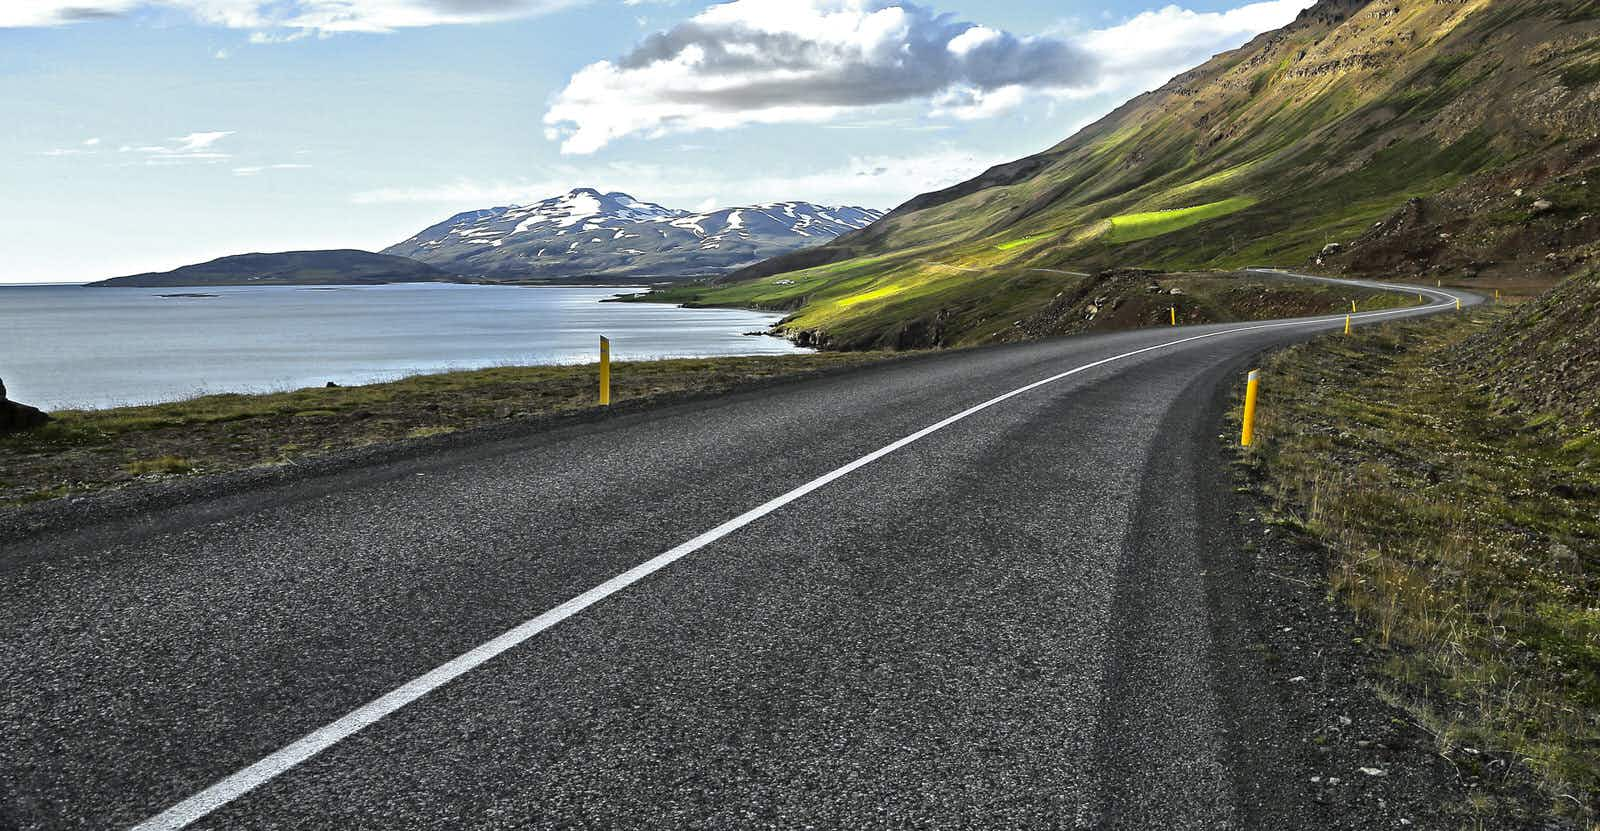 Road tripping along Iceland's longest fjord